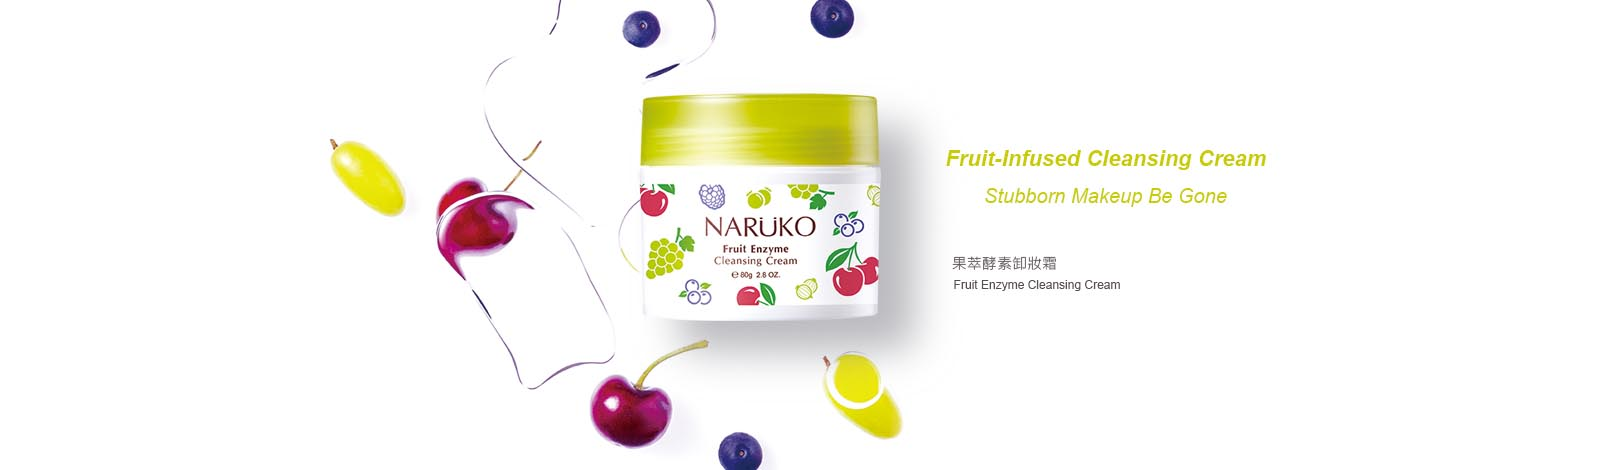 fruit-enzyme-cleansing-cream-01.jpg